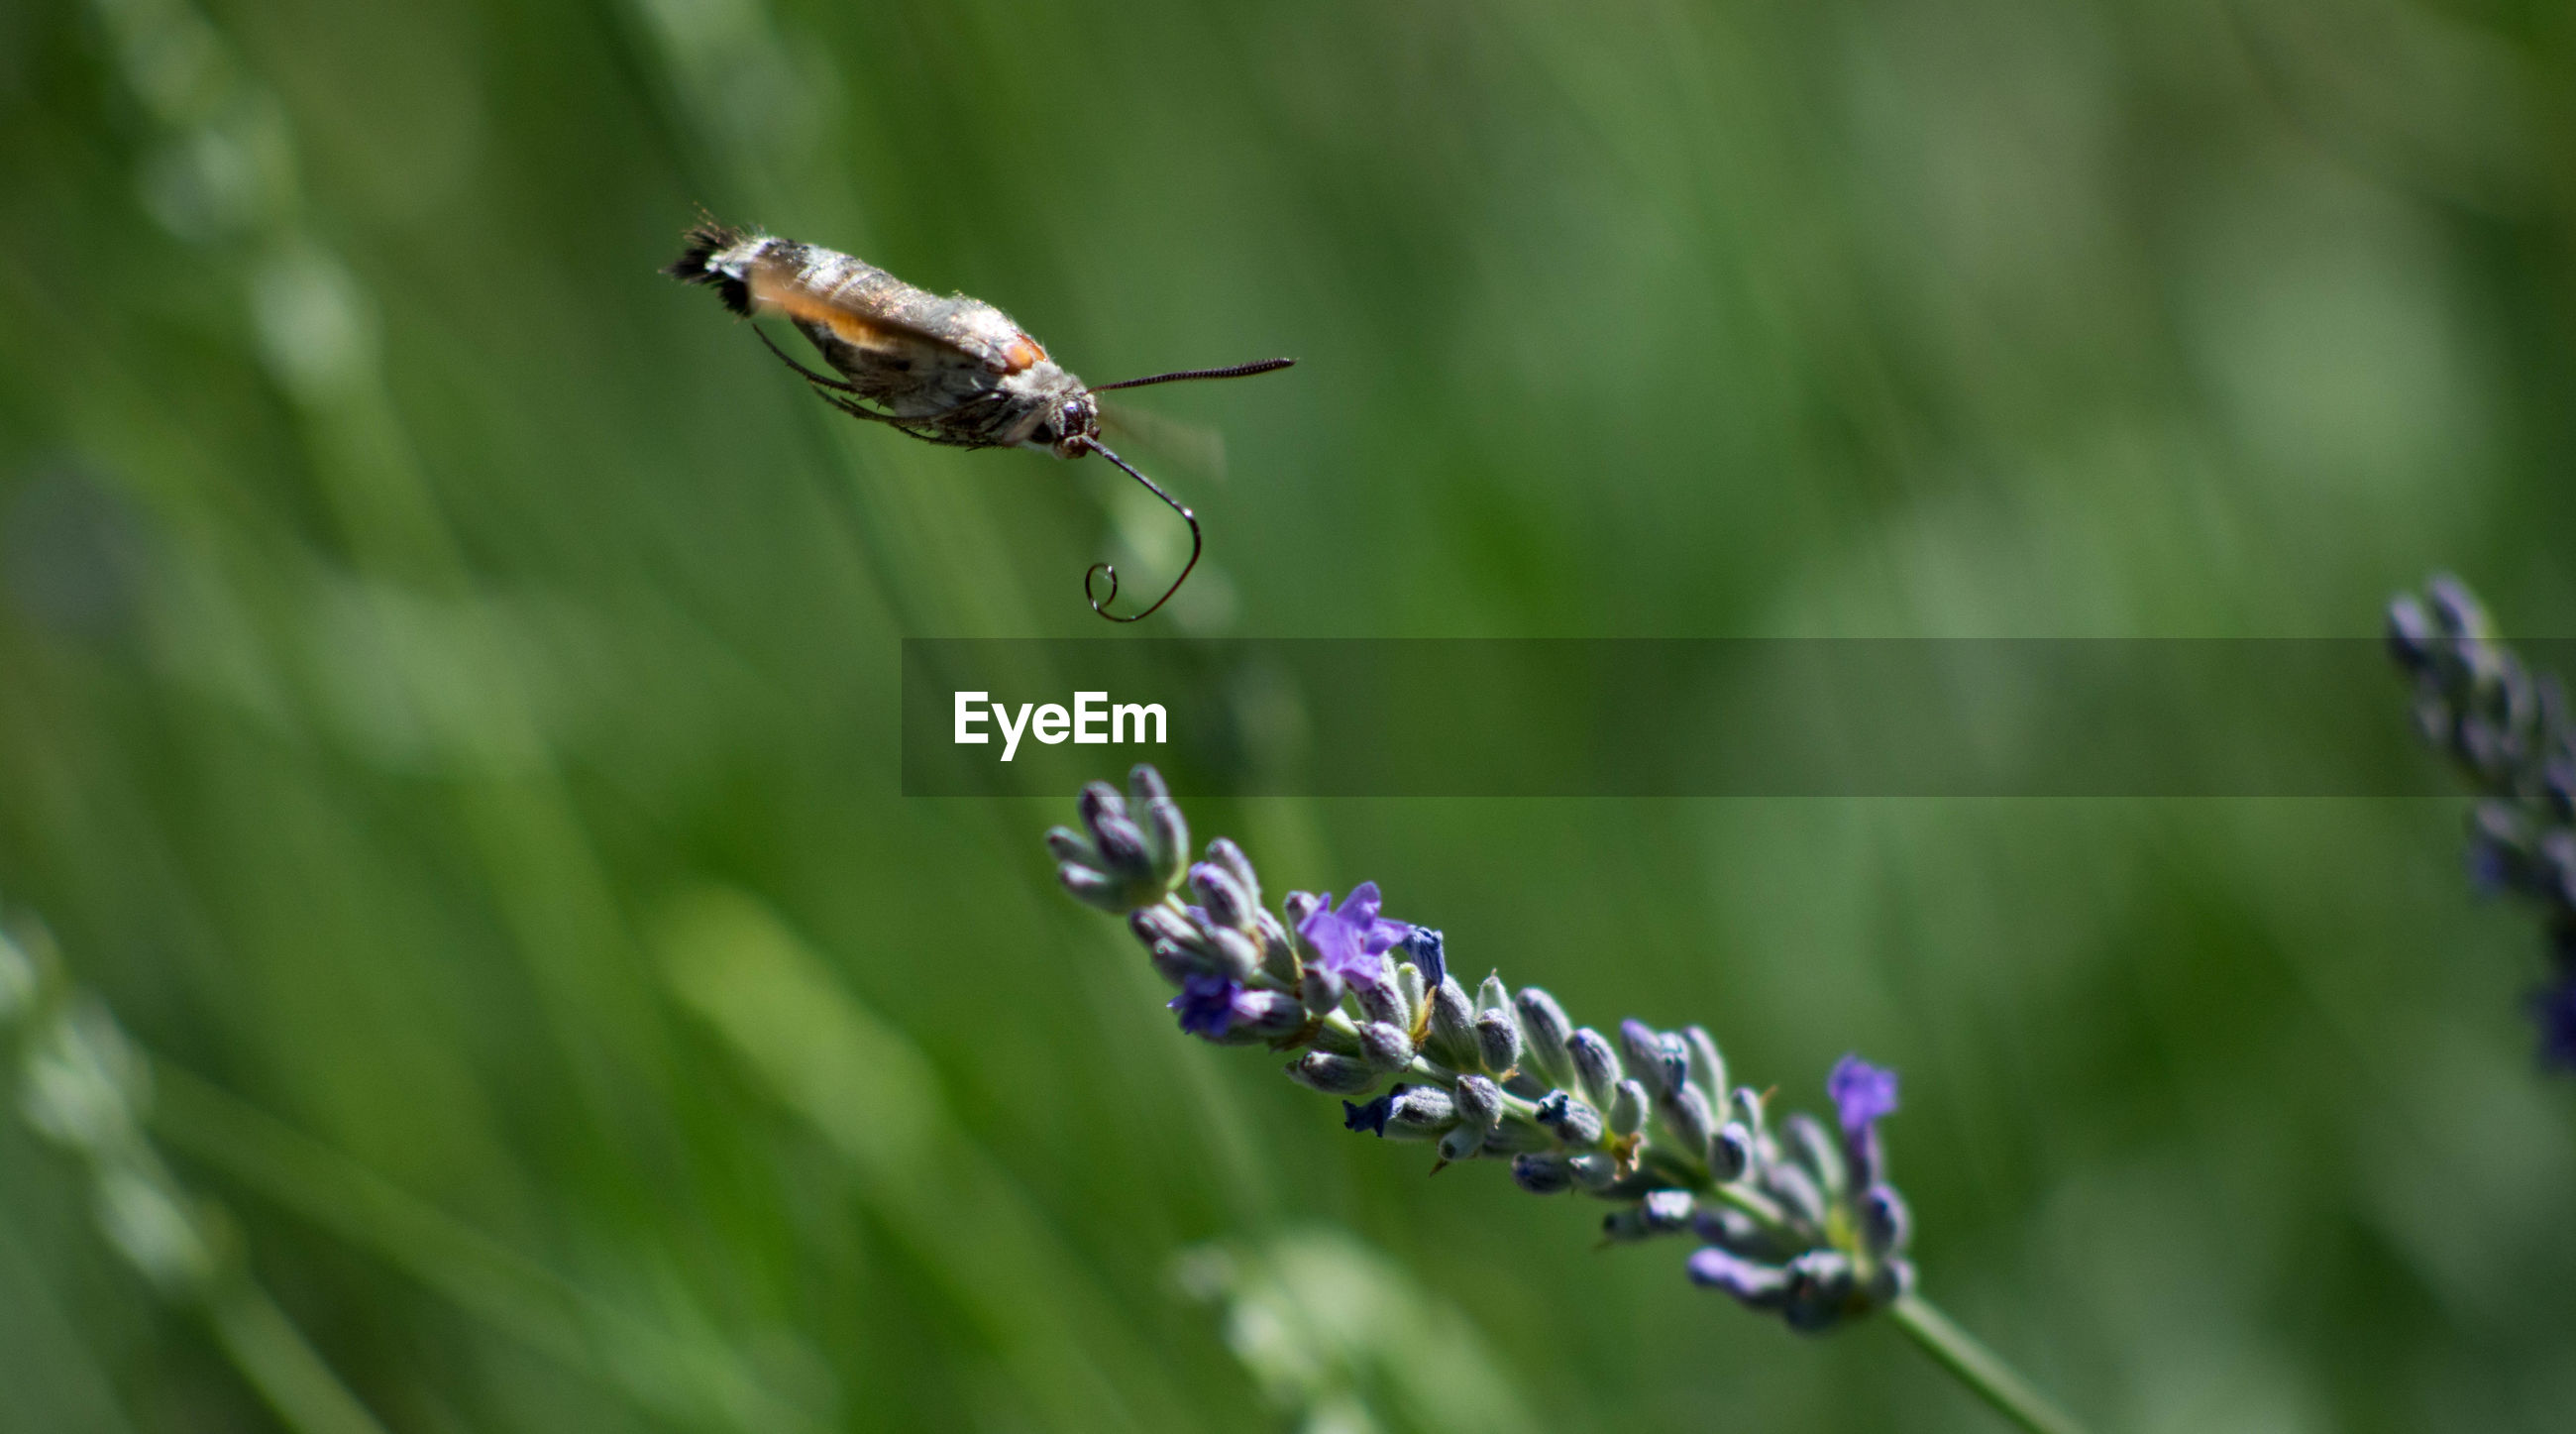 Insect buzzing by lavender